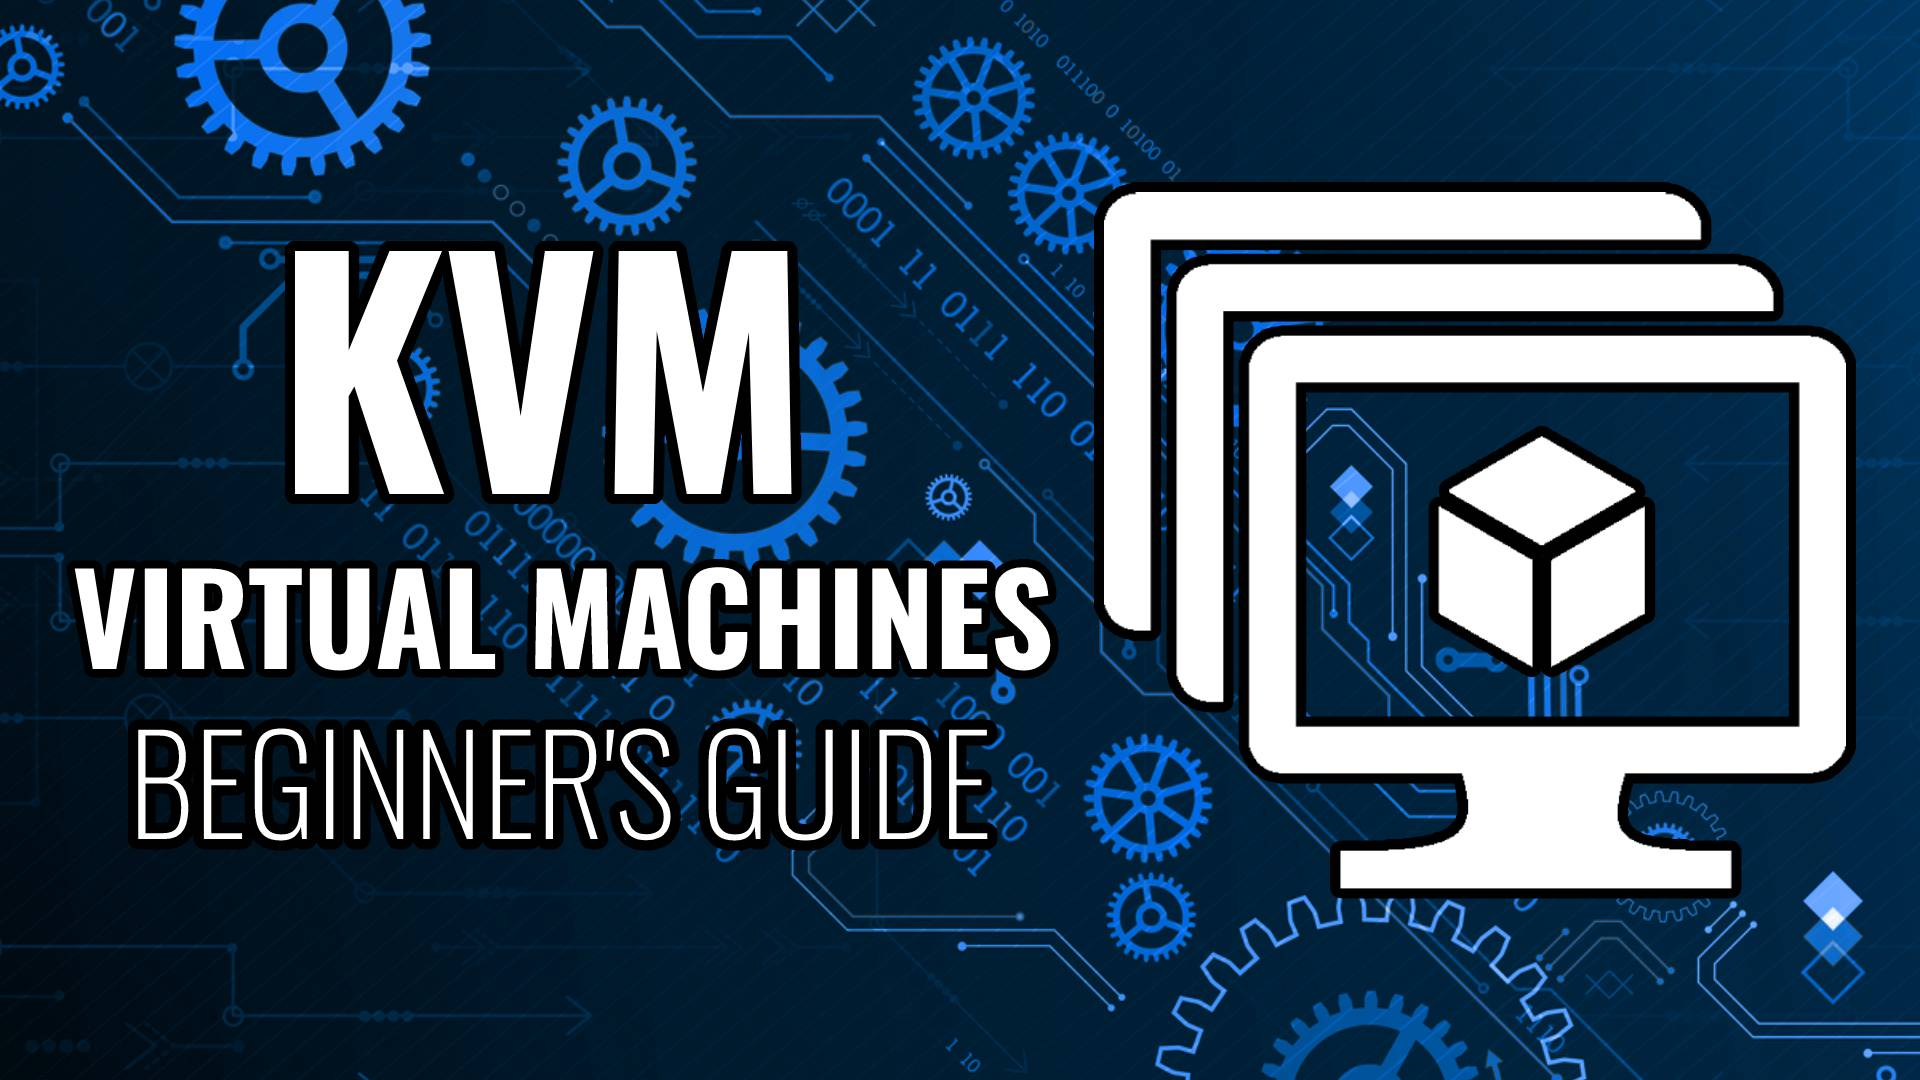 Getting Started With KVM Hypervisor, Virtual Machines The Right Way